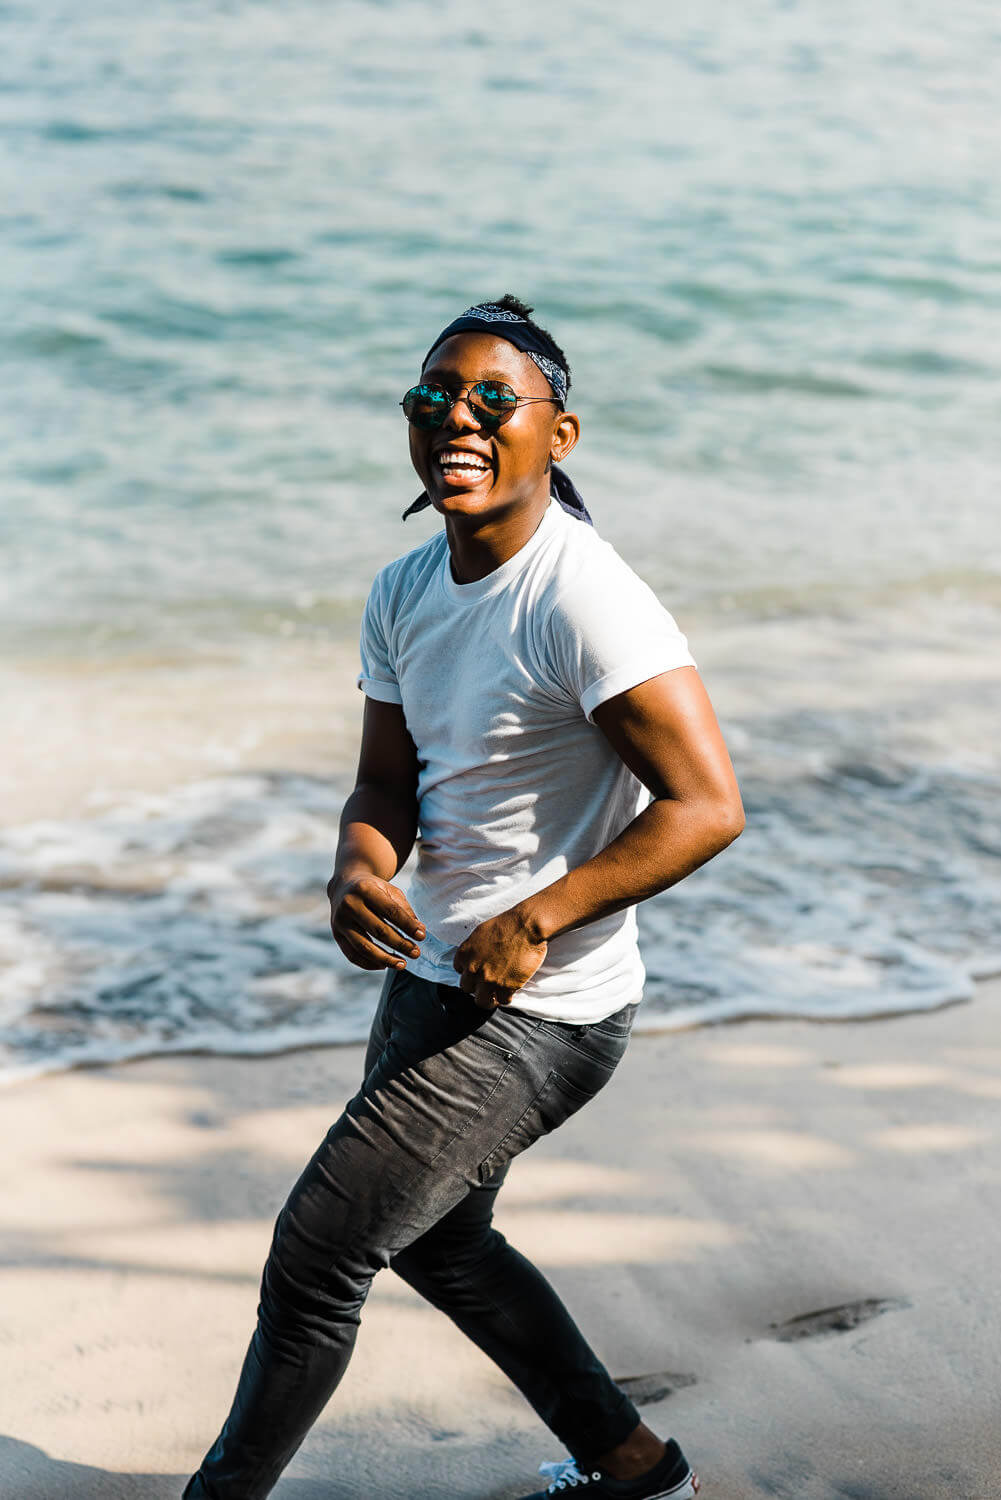 Young man laughs while running on the beach in the Caribbean